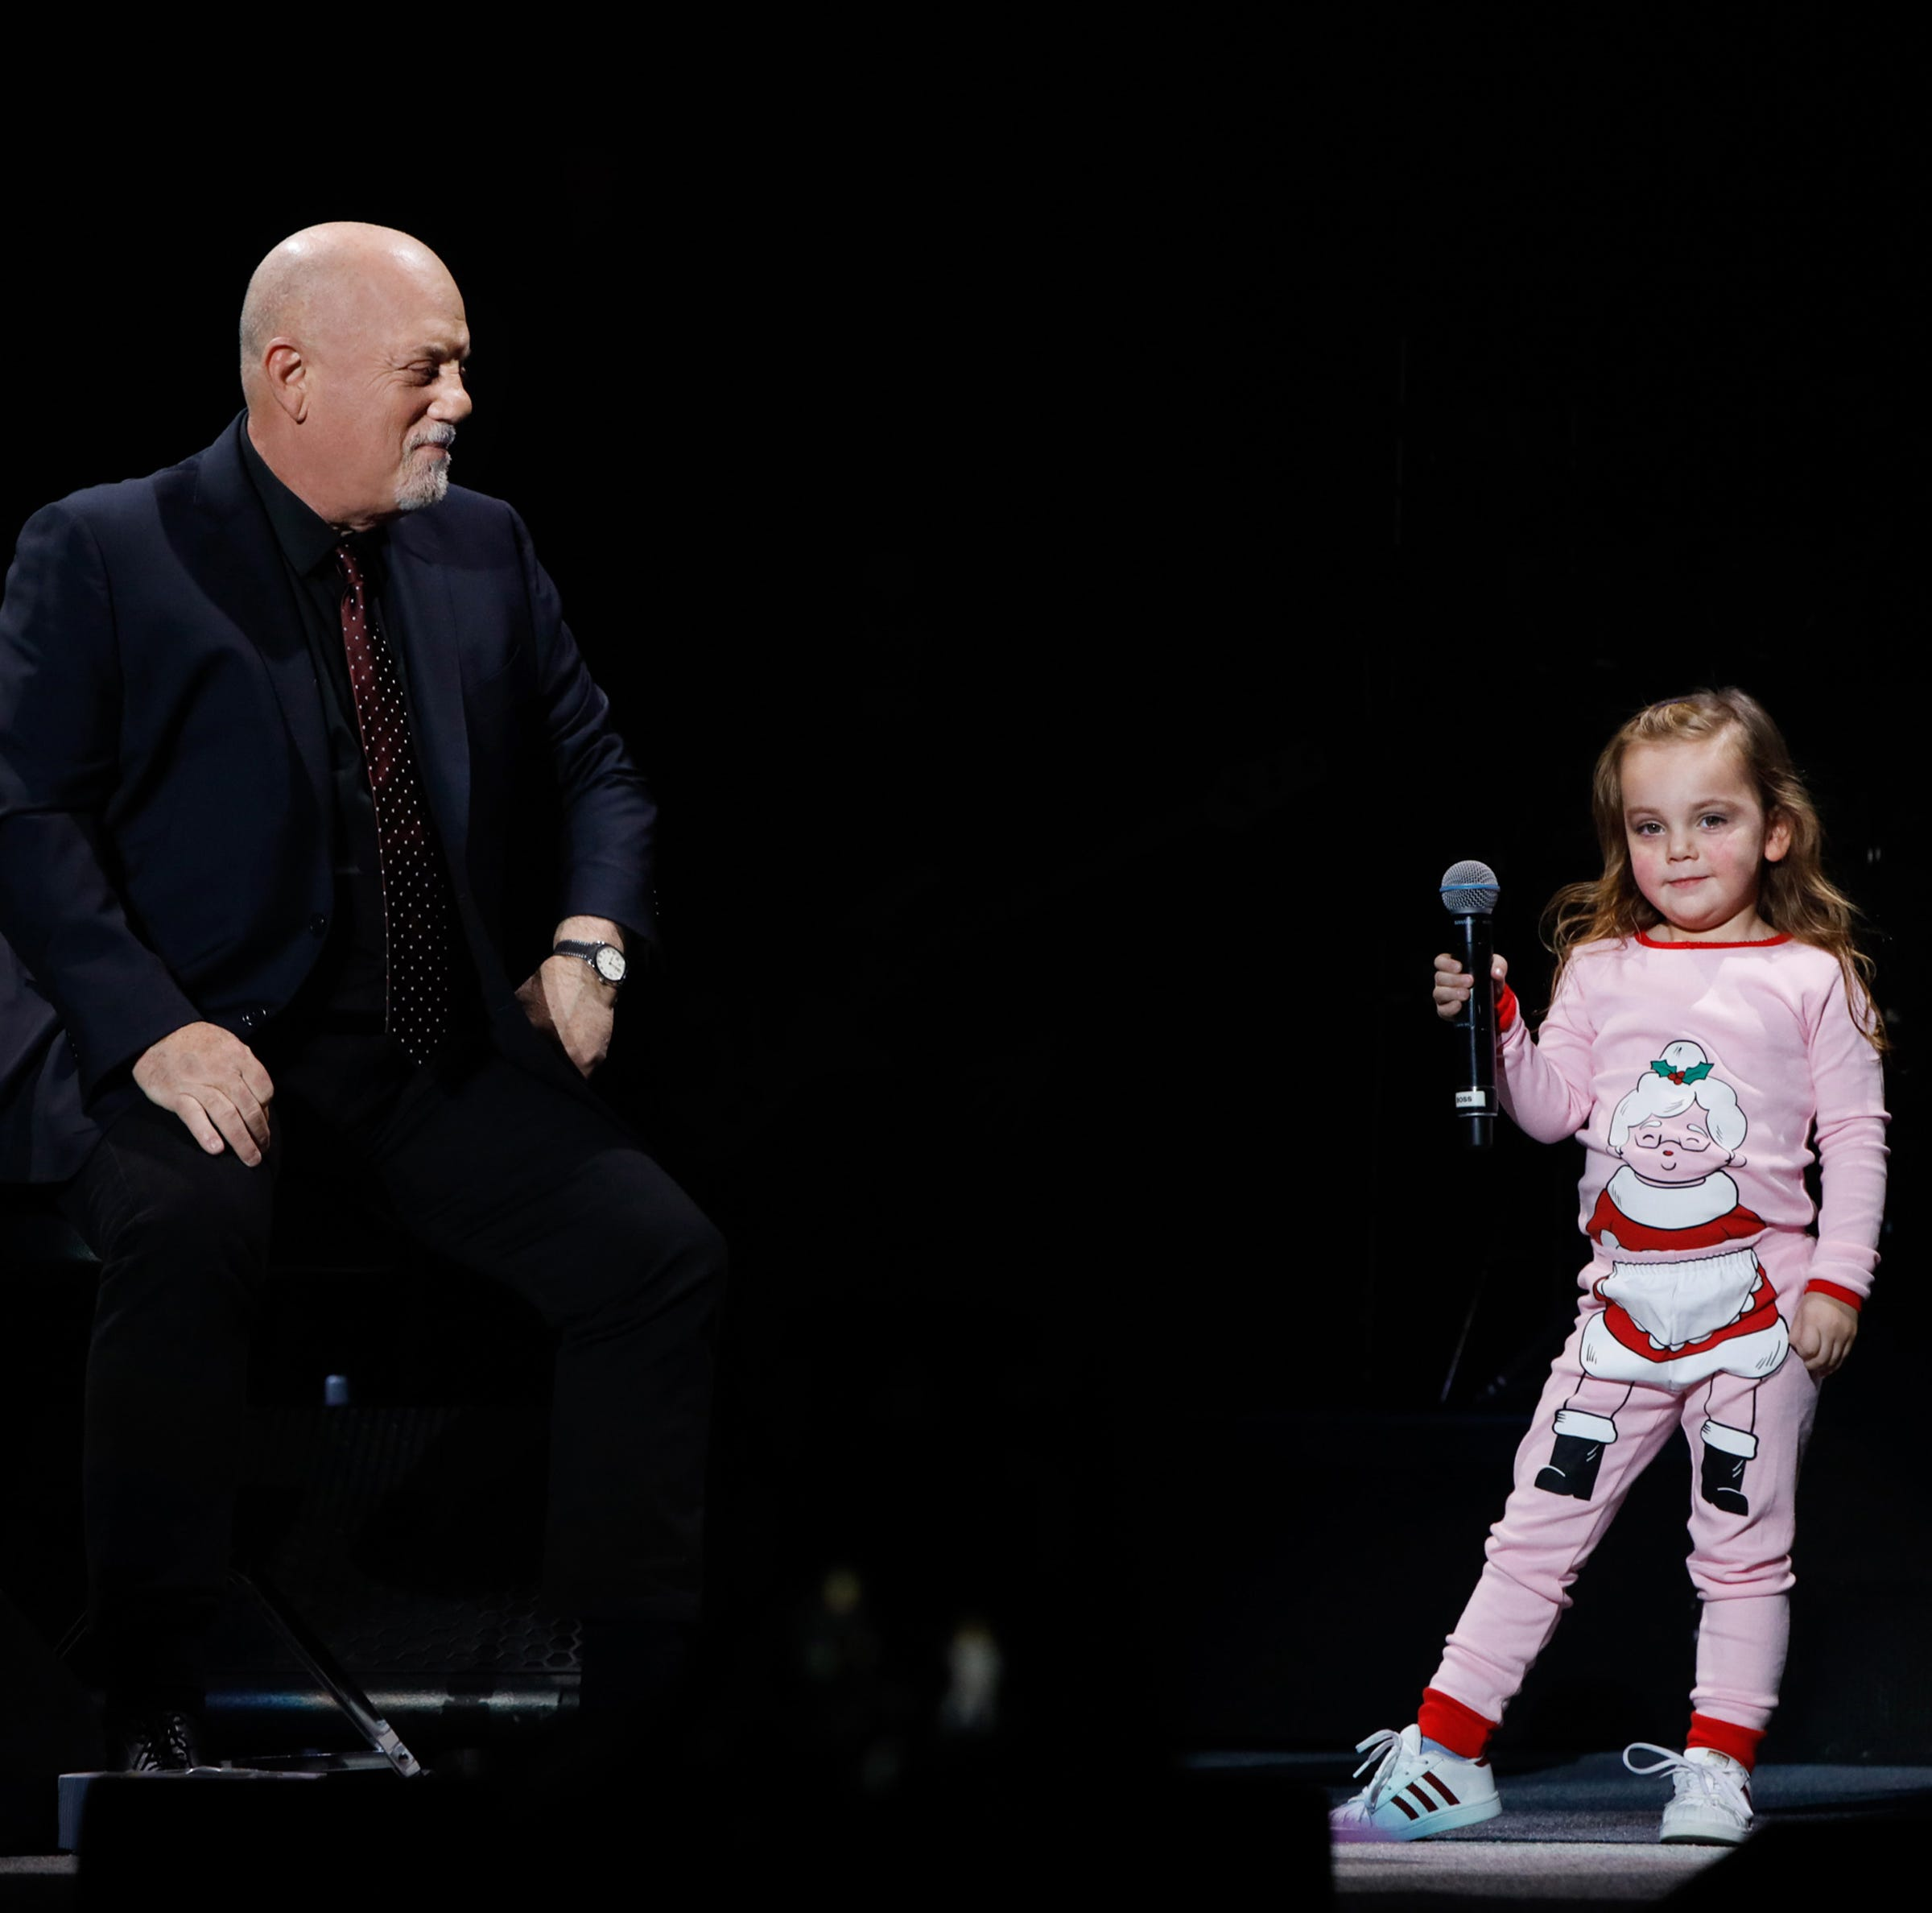 "Della Rose Joel, age 3, joins her father Billy Joel onstage for a duet of Della's favorite song ""Don't Ask Me Why"" during Billy Joel's sold out show  at Madison Square Garden on December 19, 2018 in New York City."